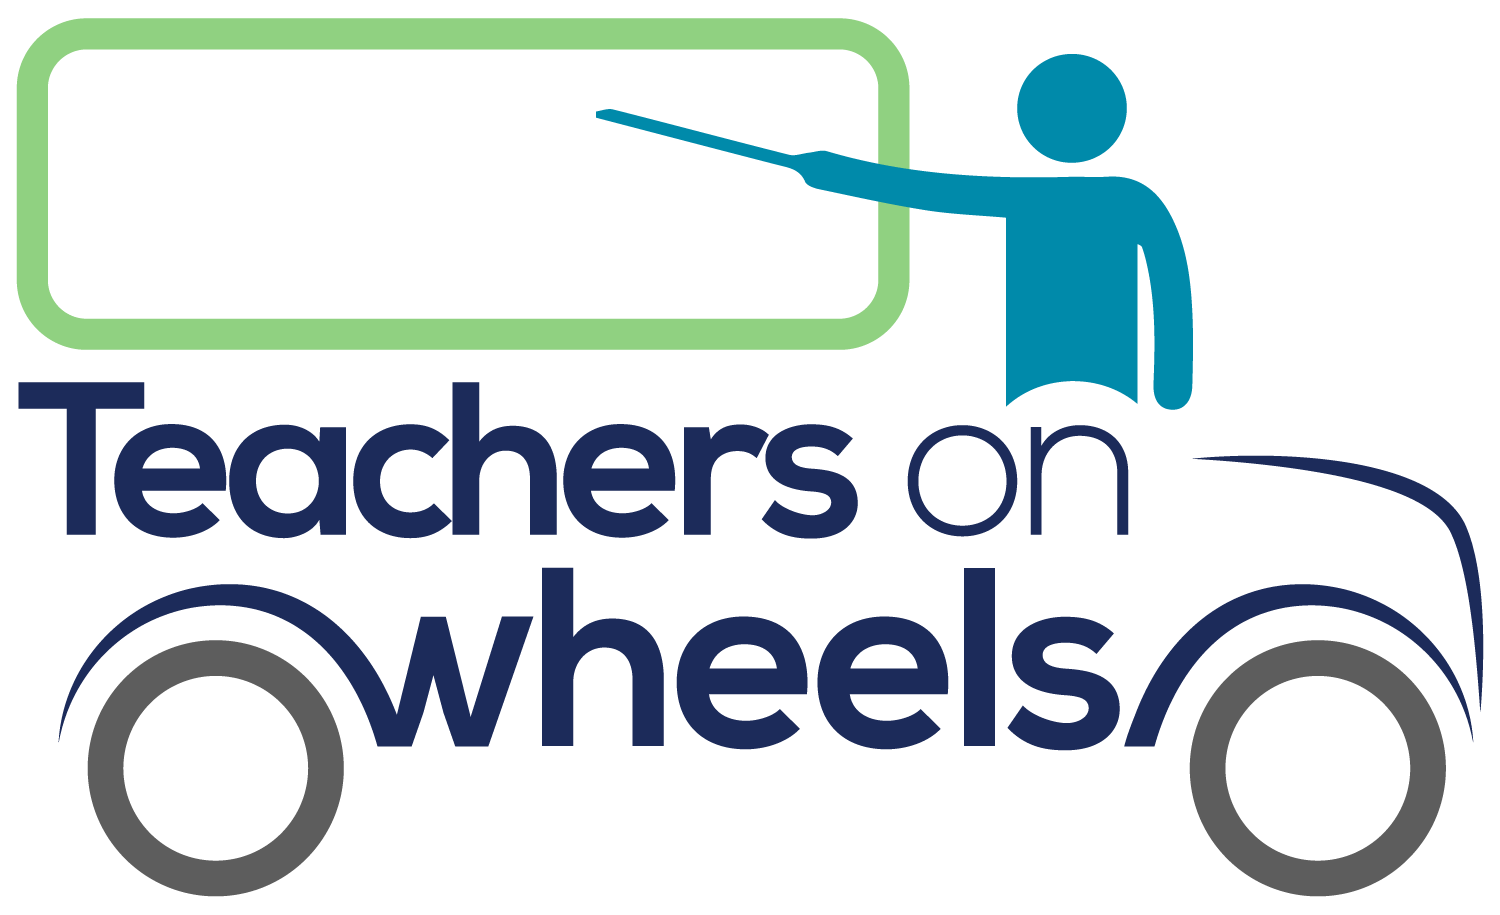 Missions clipart student citizenship. Teachers on wheels teach